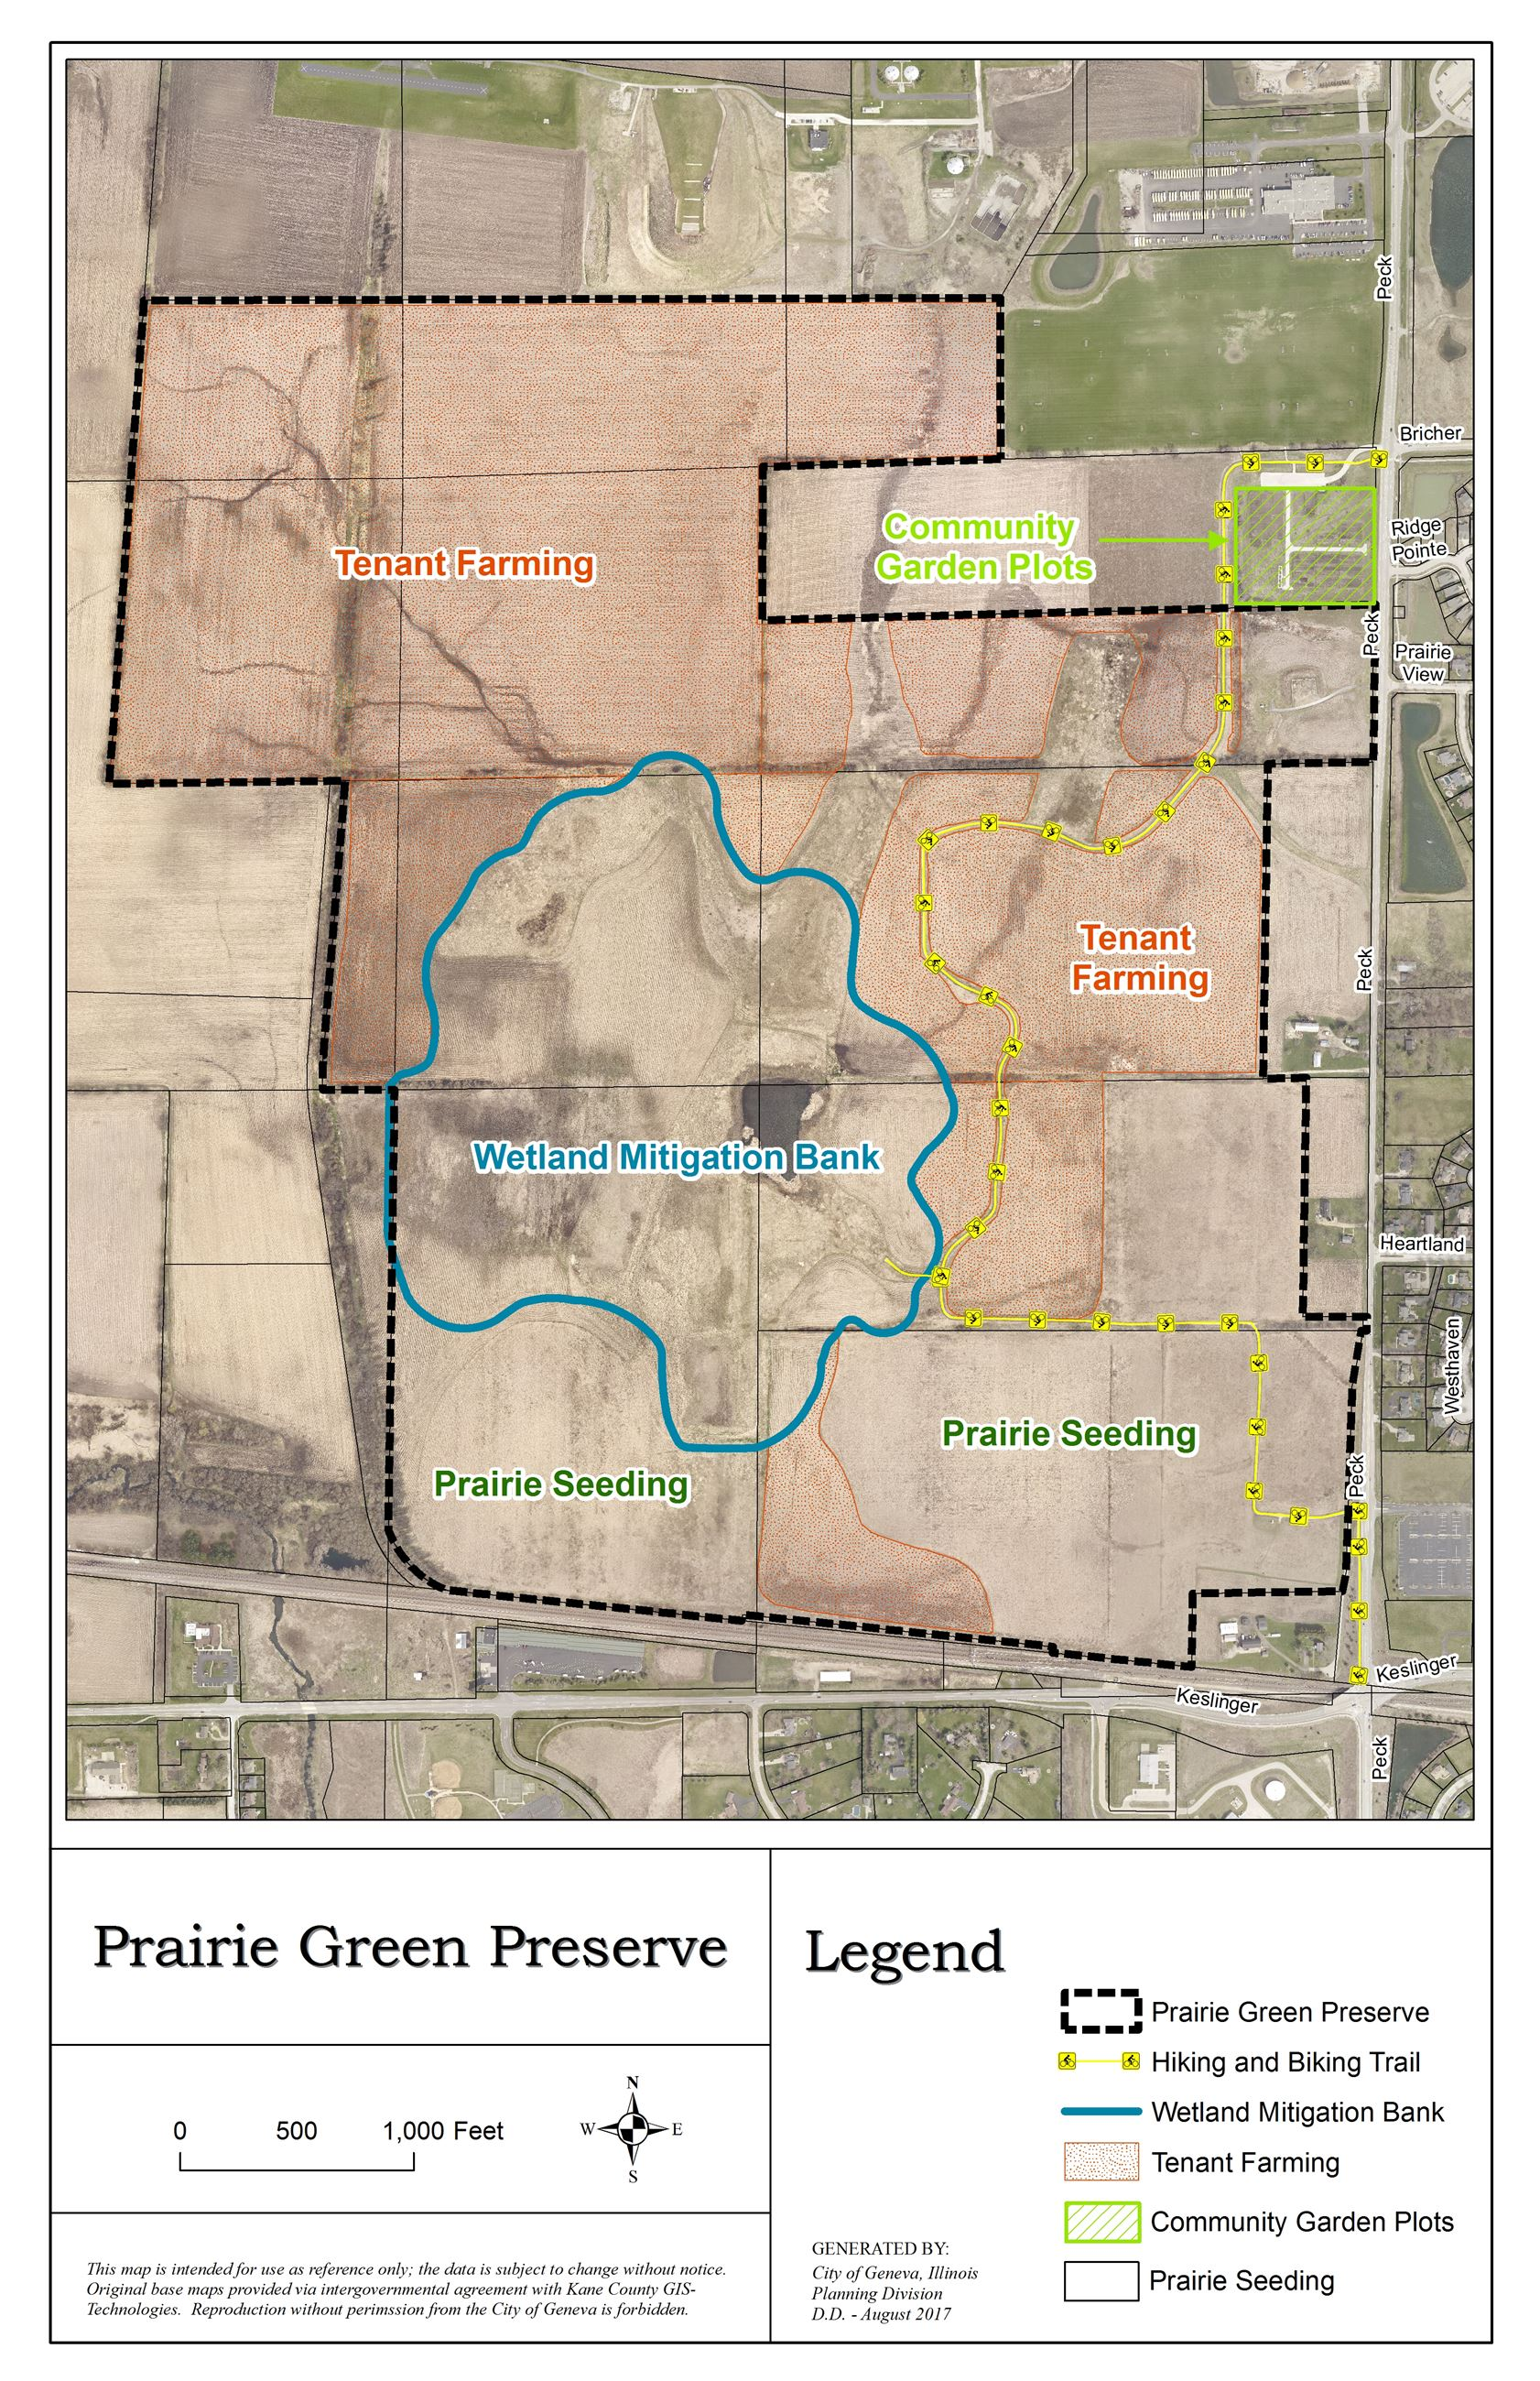 Prairie Green Preserve Opens in new window